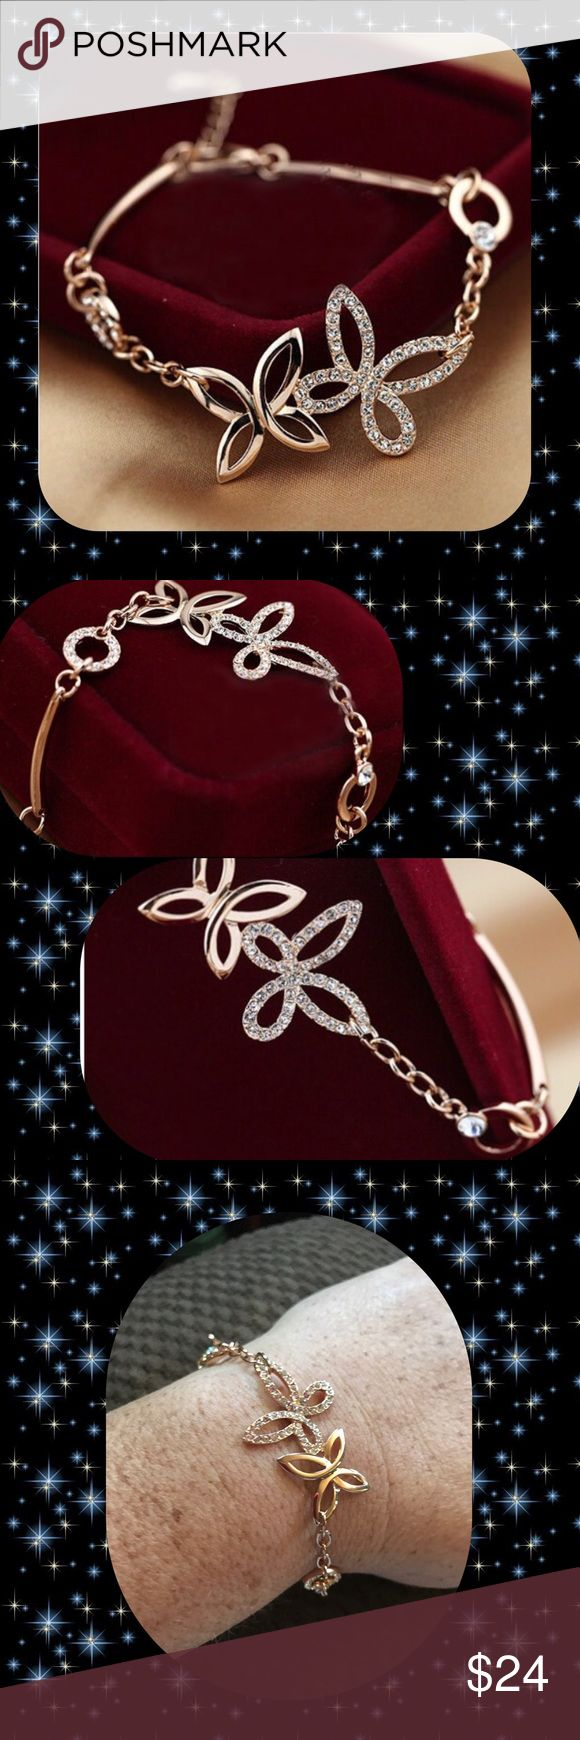 """Rose Gold Crystal Pastoral Butterfly Bracelet 18K Rose Gold Plated (Allergy Free), Clear crystals. Fits sizes 7 1/2""""-8"""". Approx. 16 g Jewelry Bracelets"""